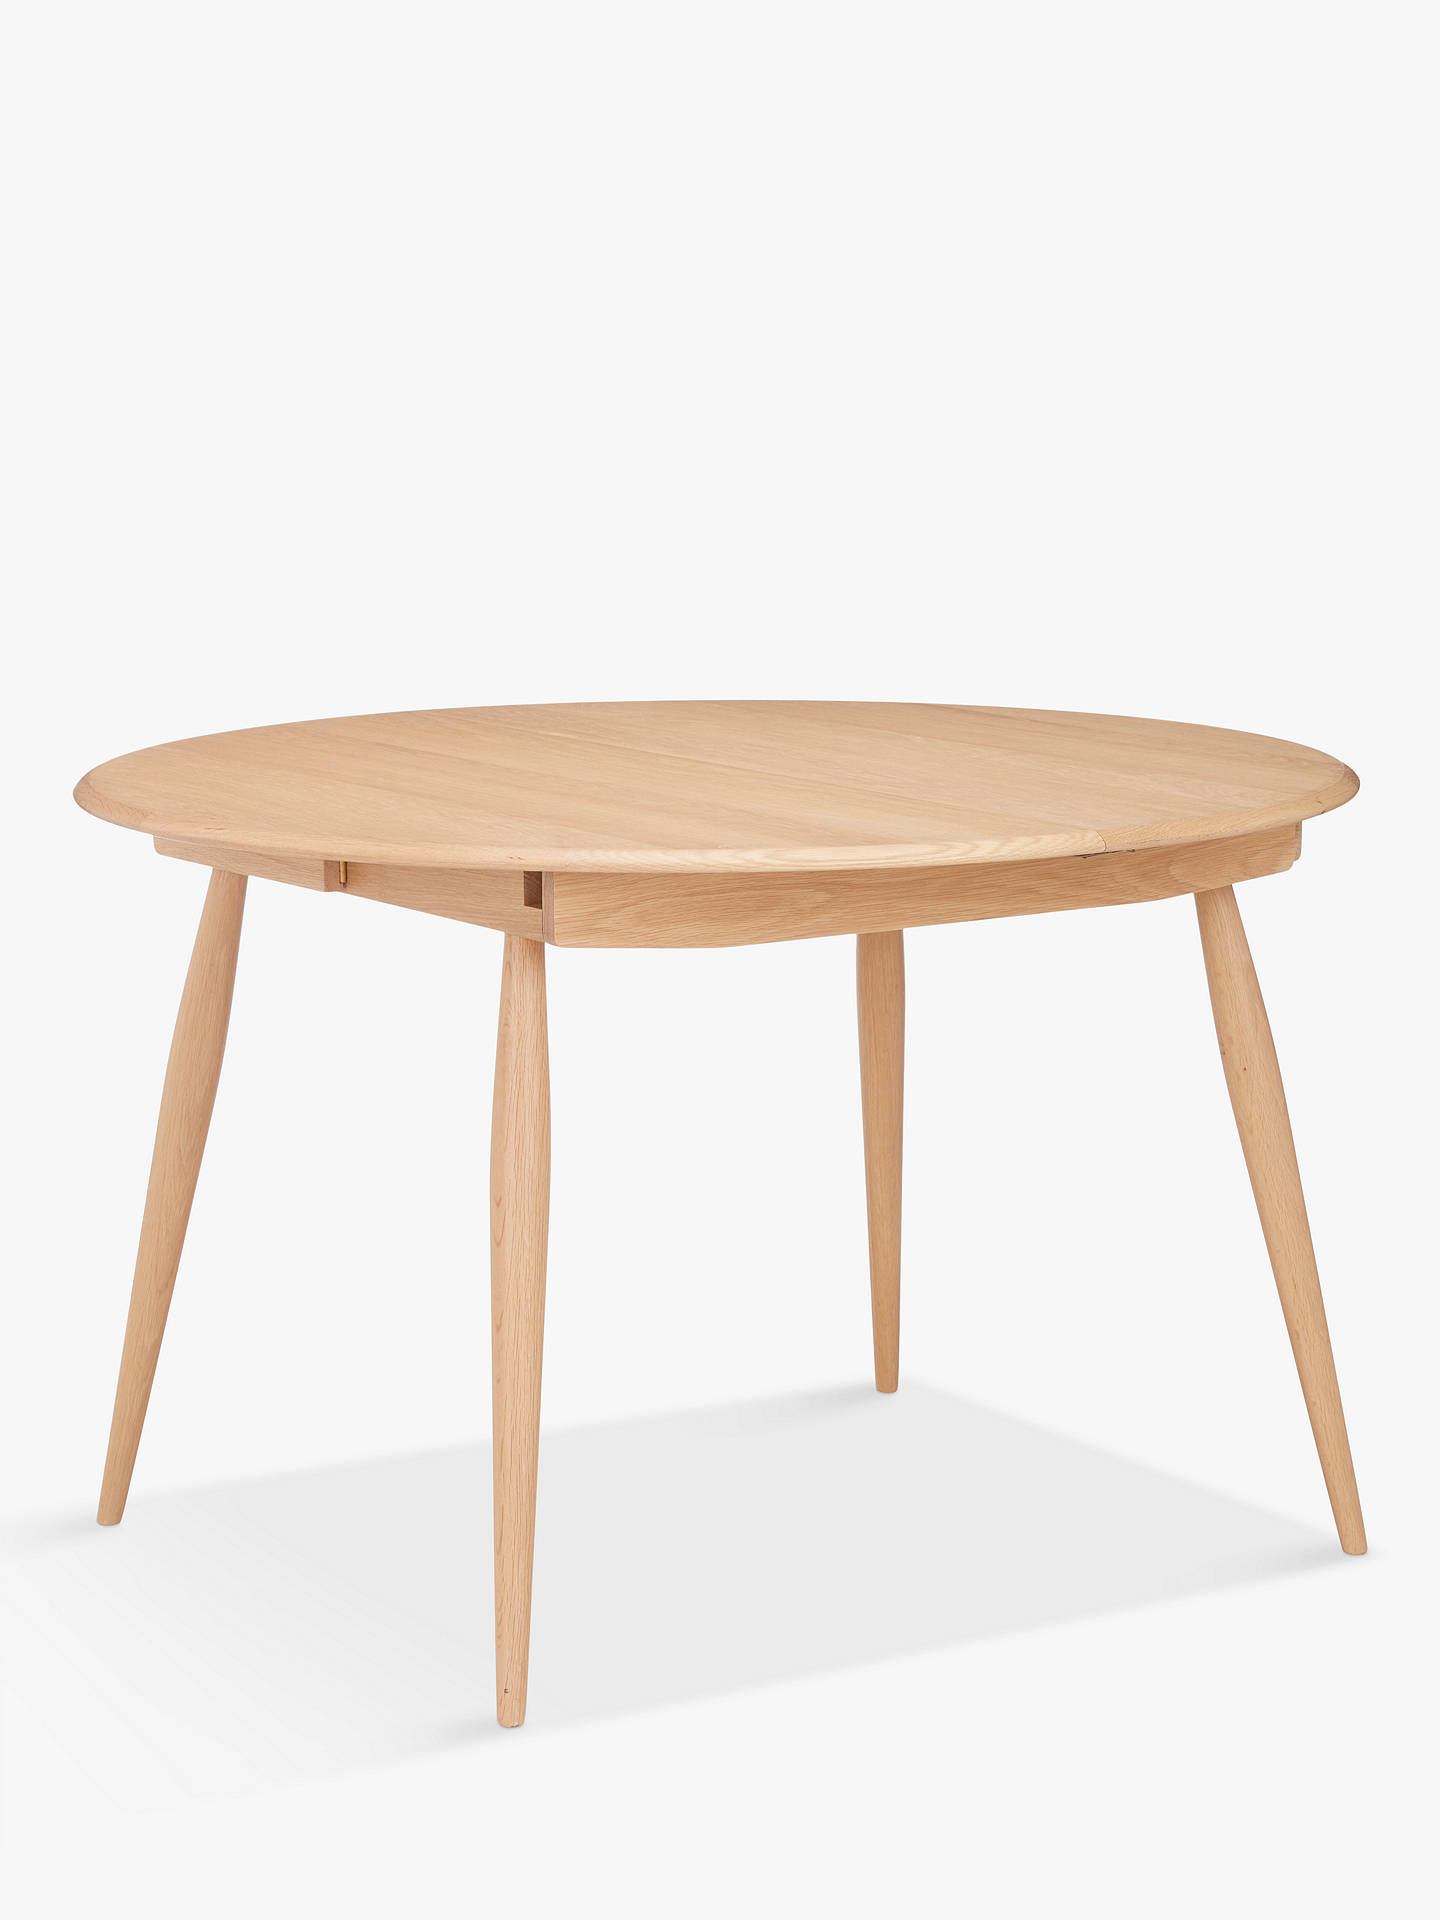 ... Buyercol For John Lewis Shalstone Round Extending Dining Table Online  At Johnlewis.com ...